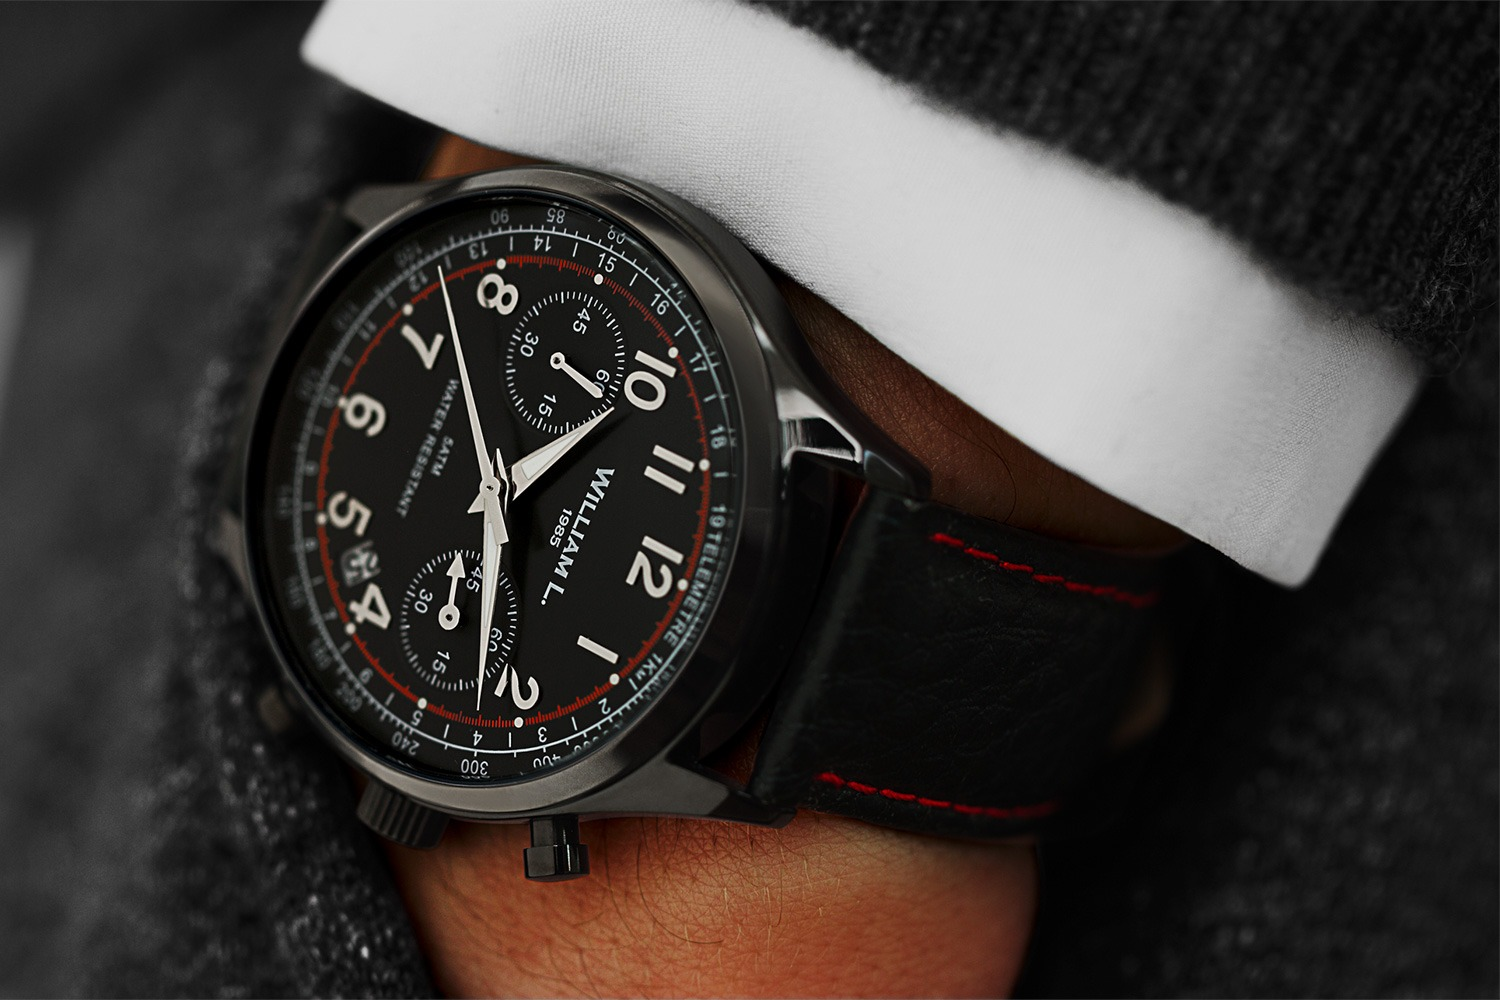 William L 1985 - Chronograph 5ATM